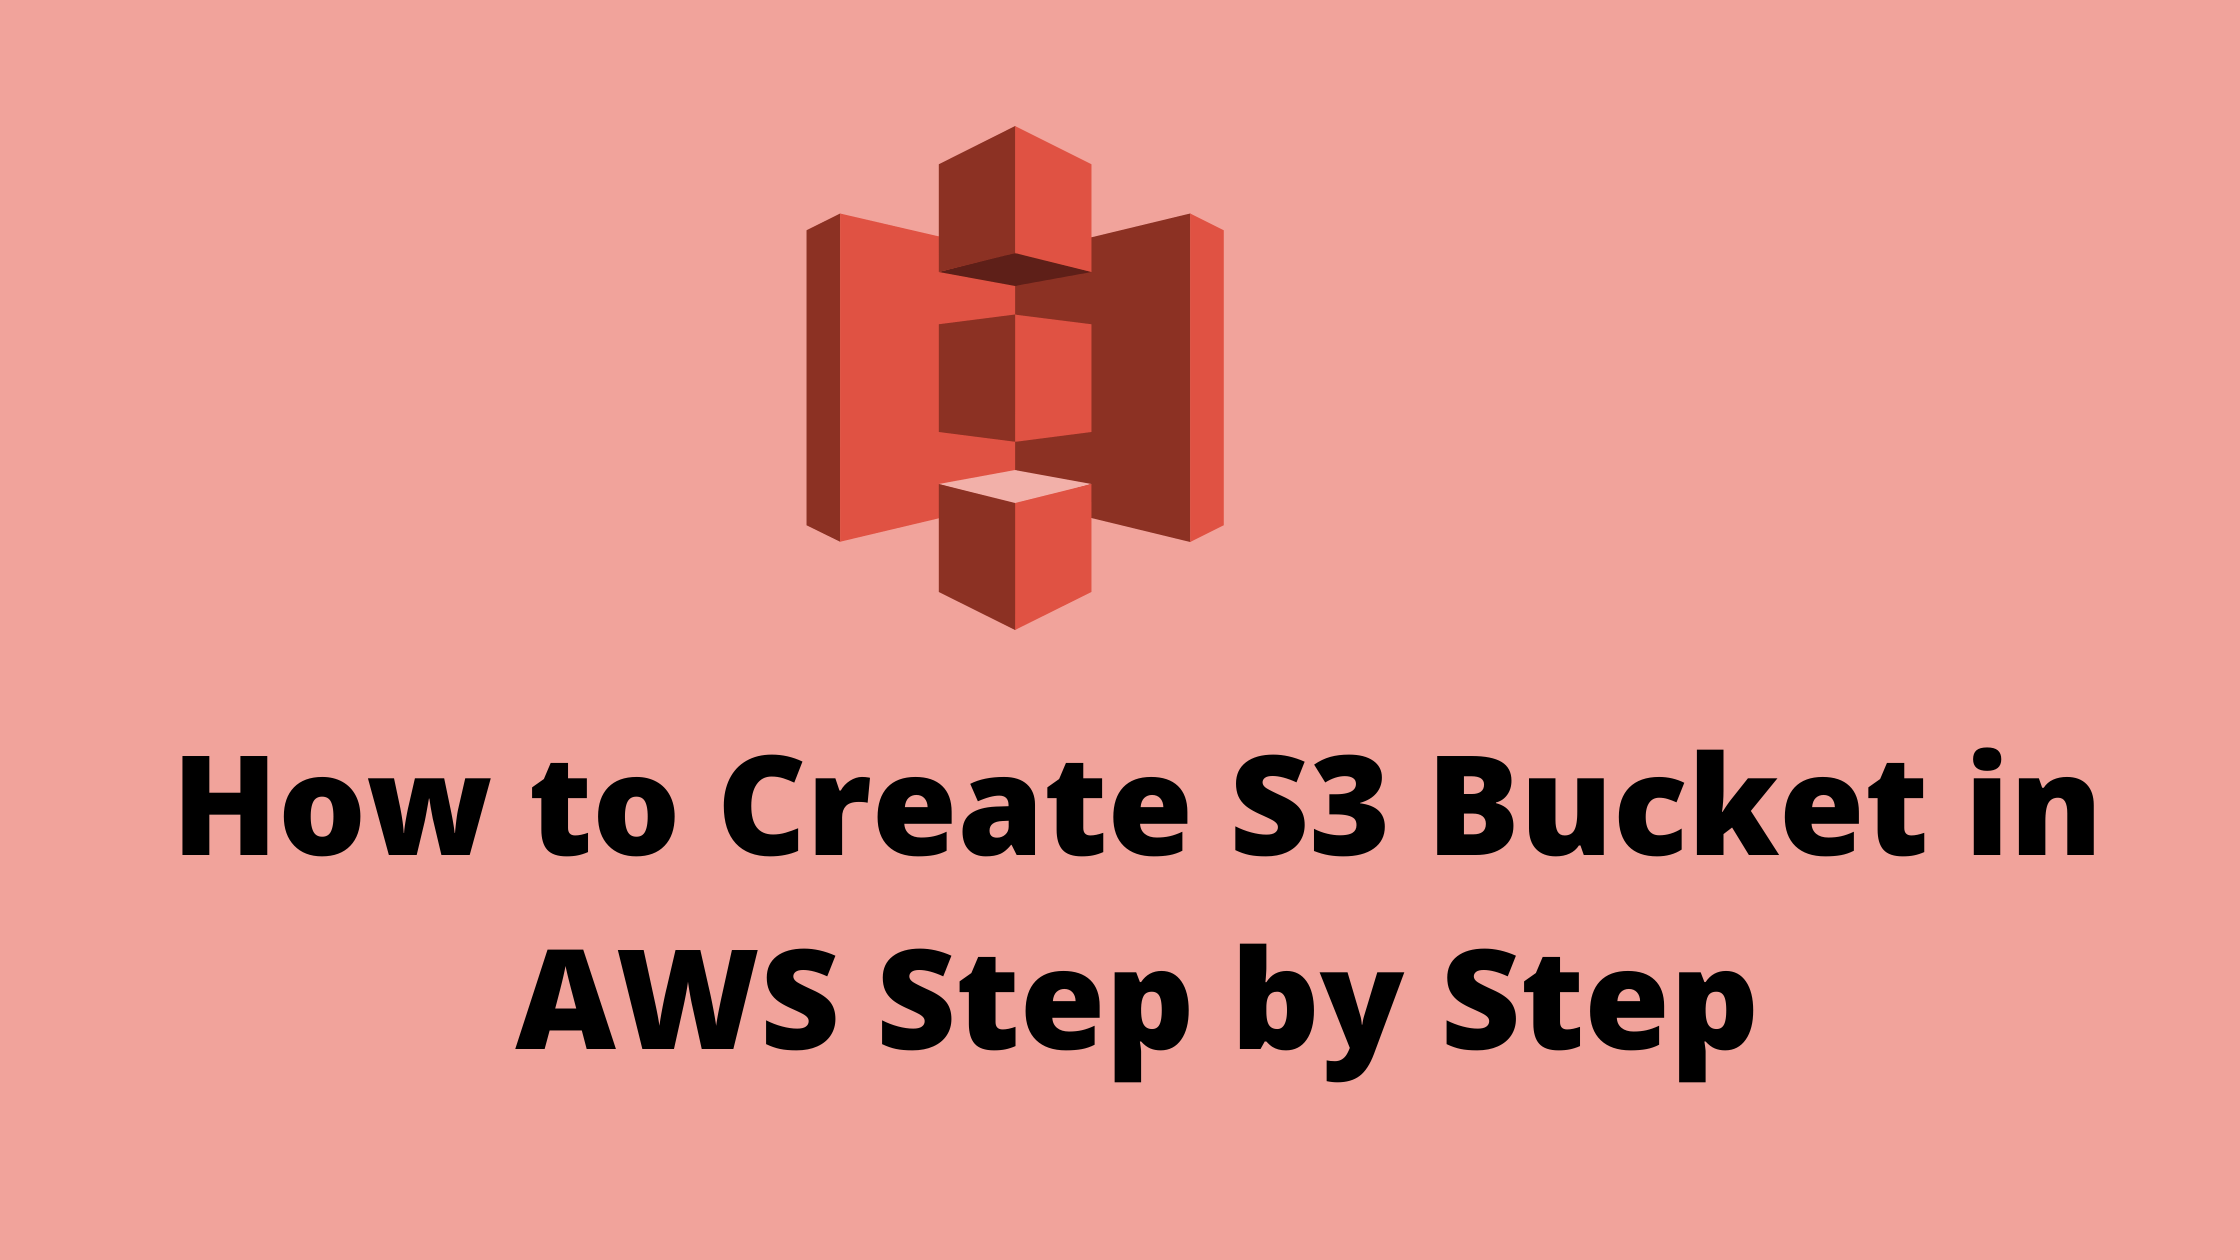 How to Create S3 Bucket in AWS Step by Step